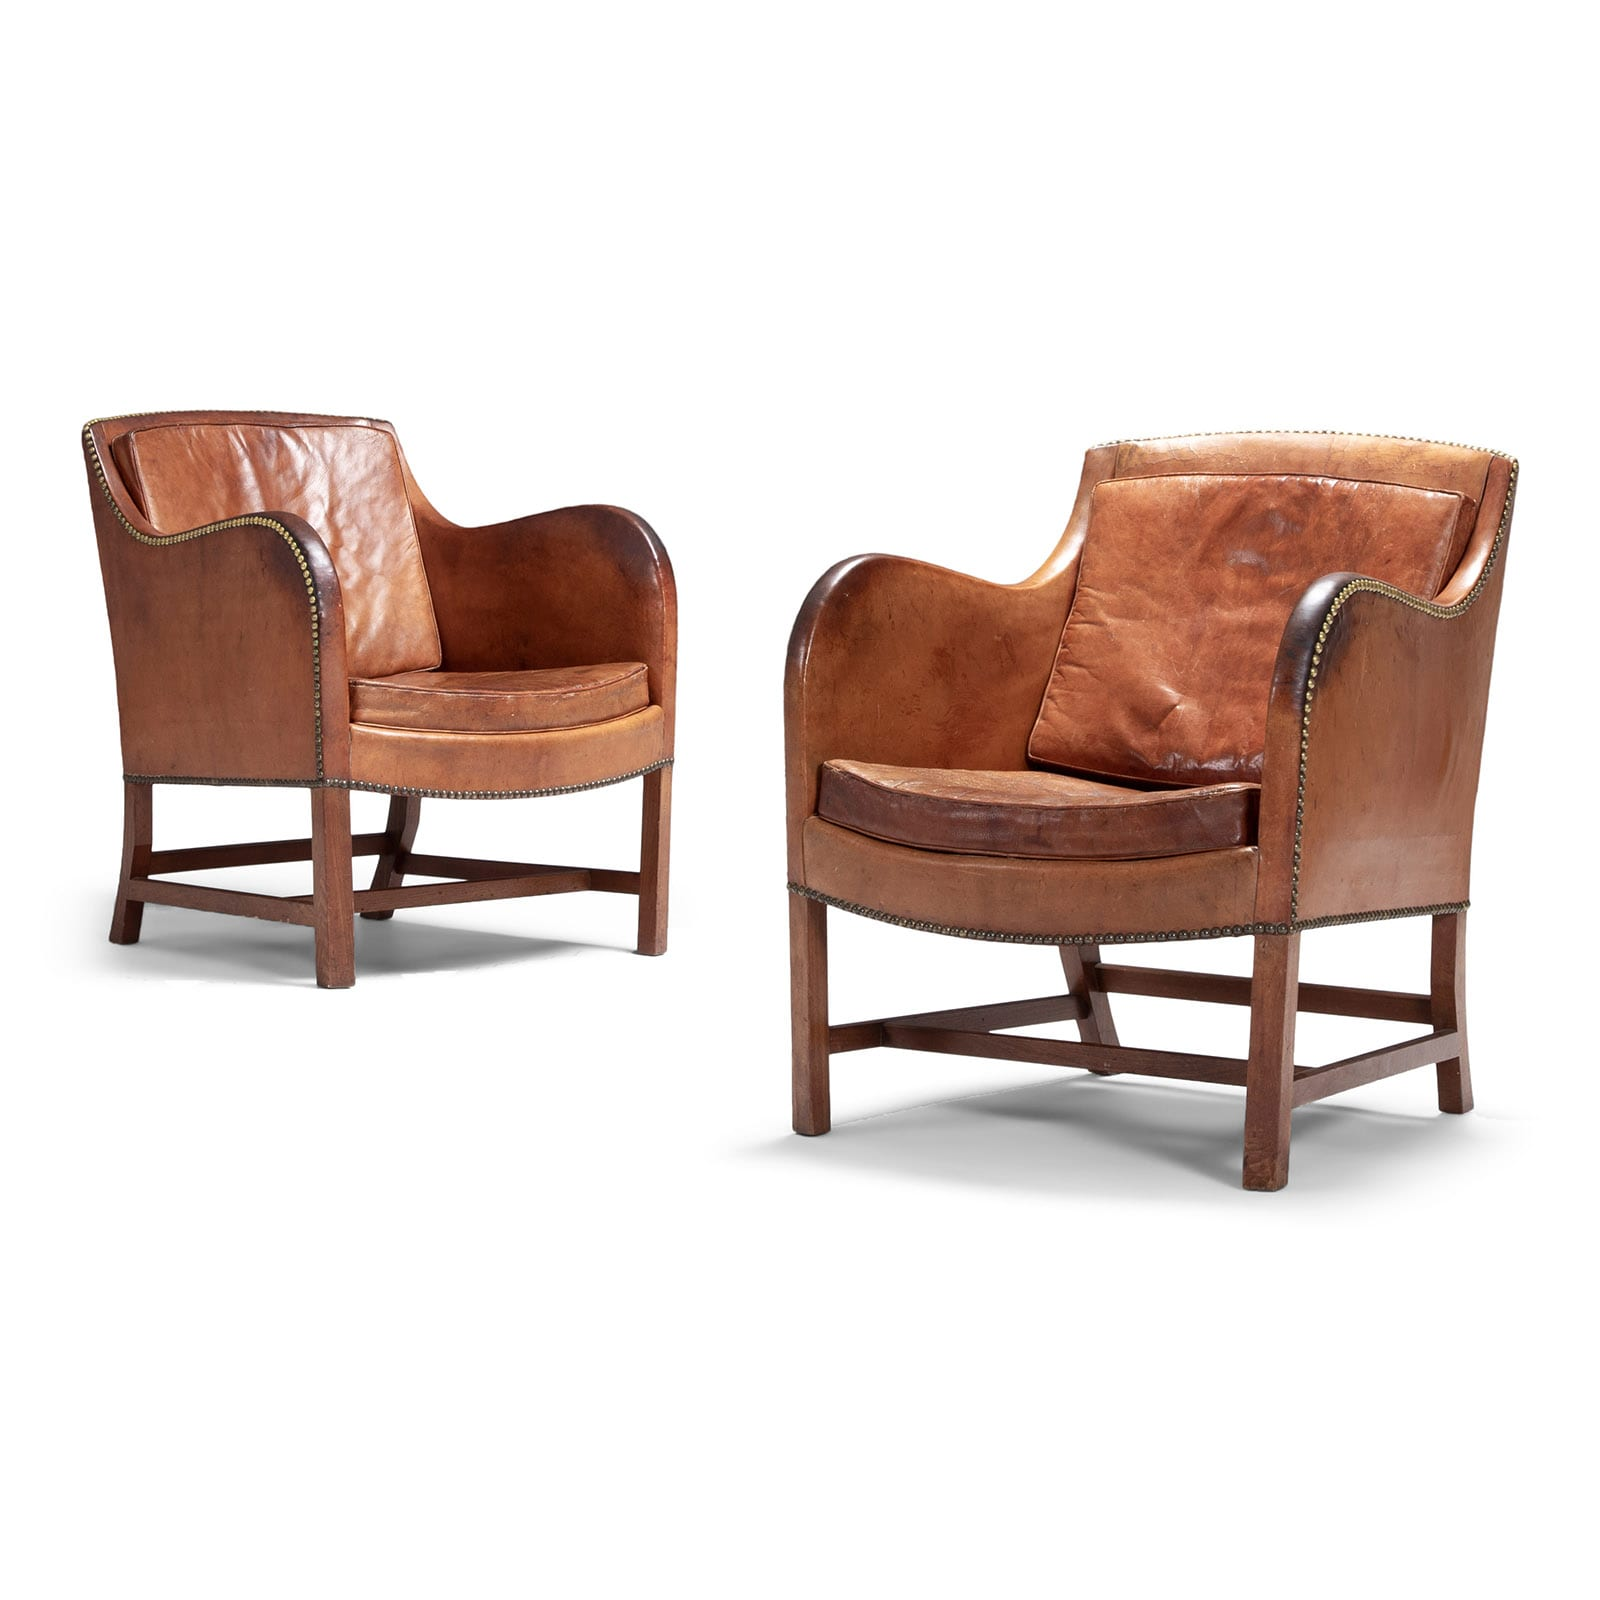 A pair of 'Mix' easy chairs